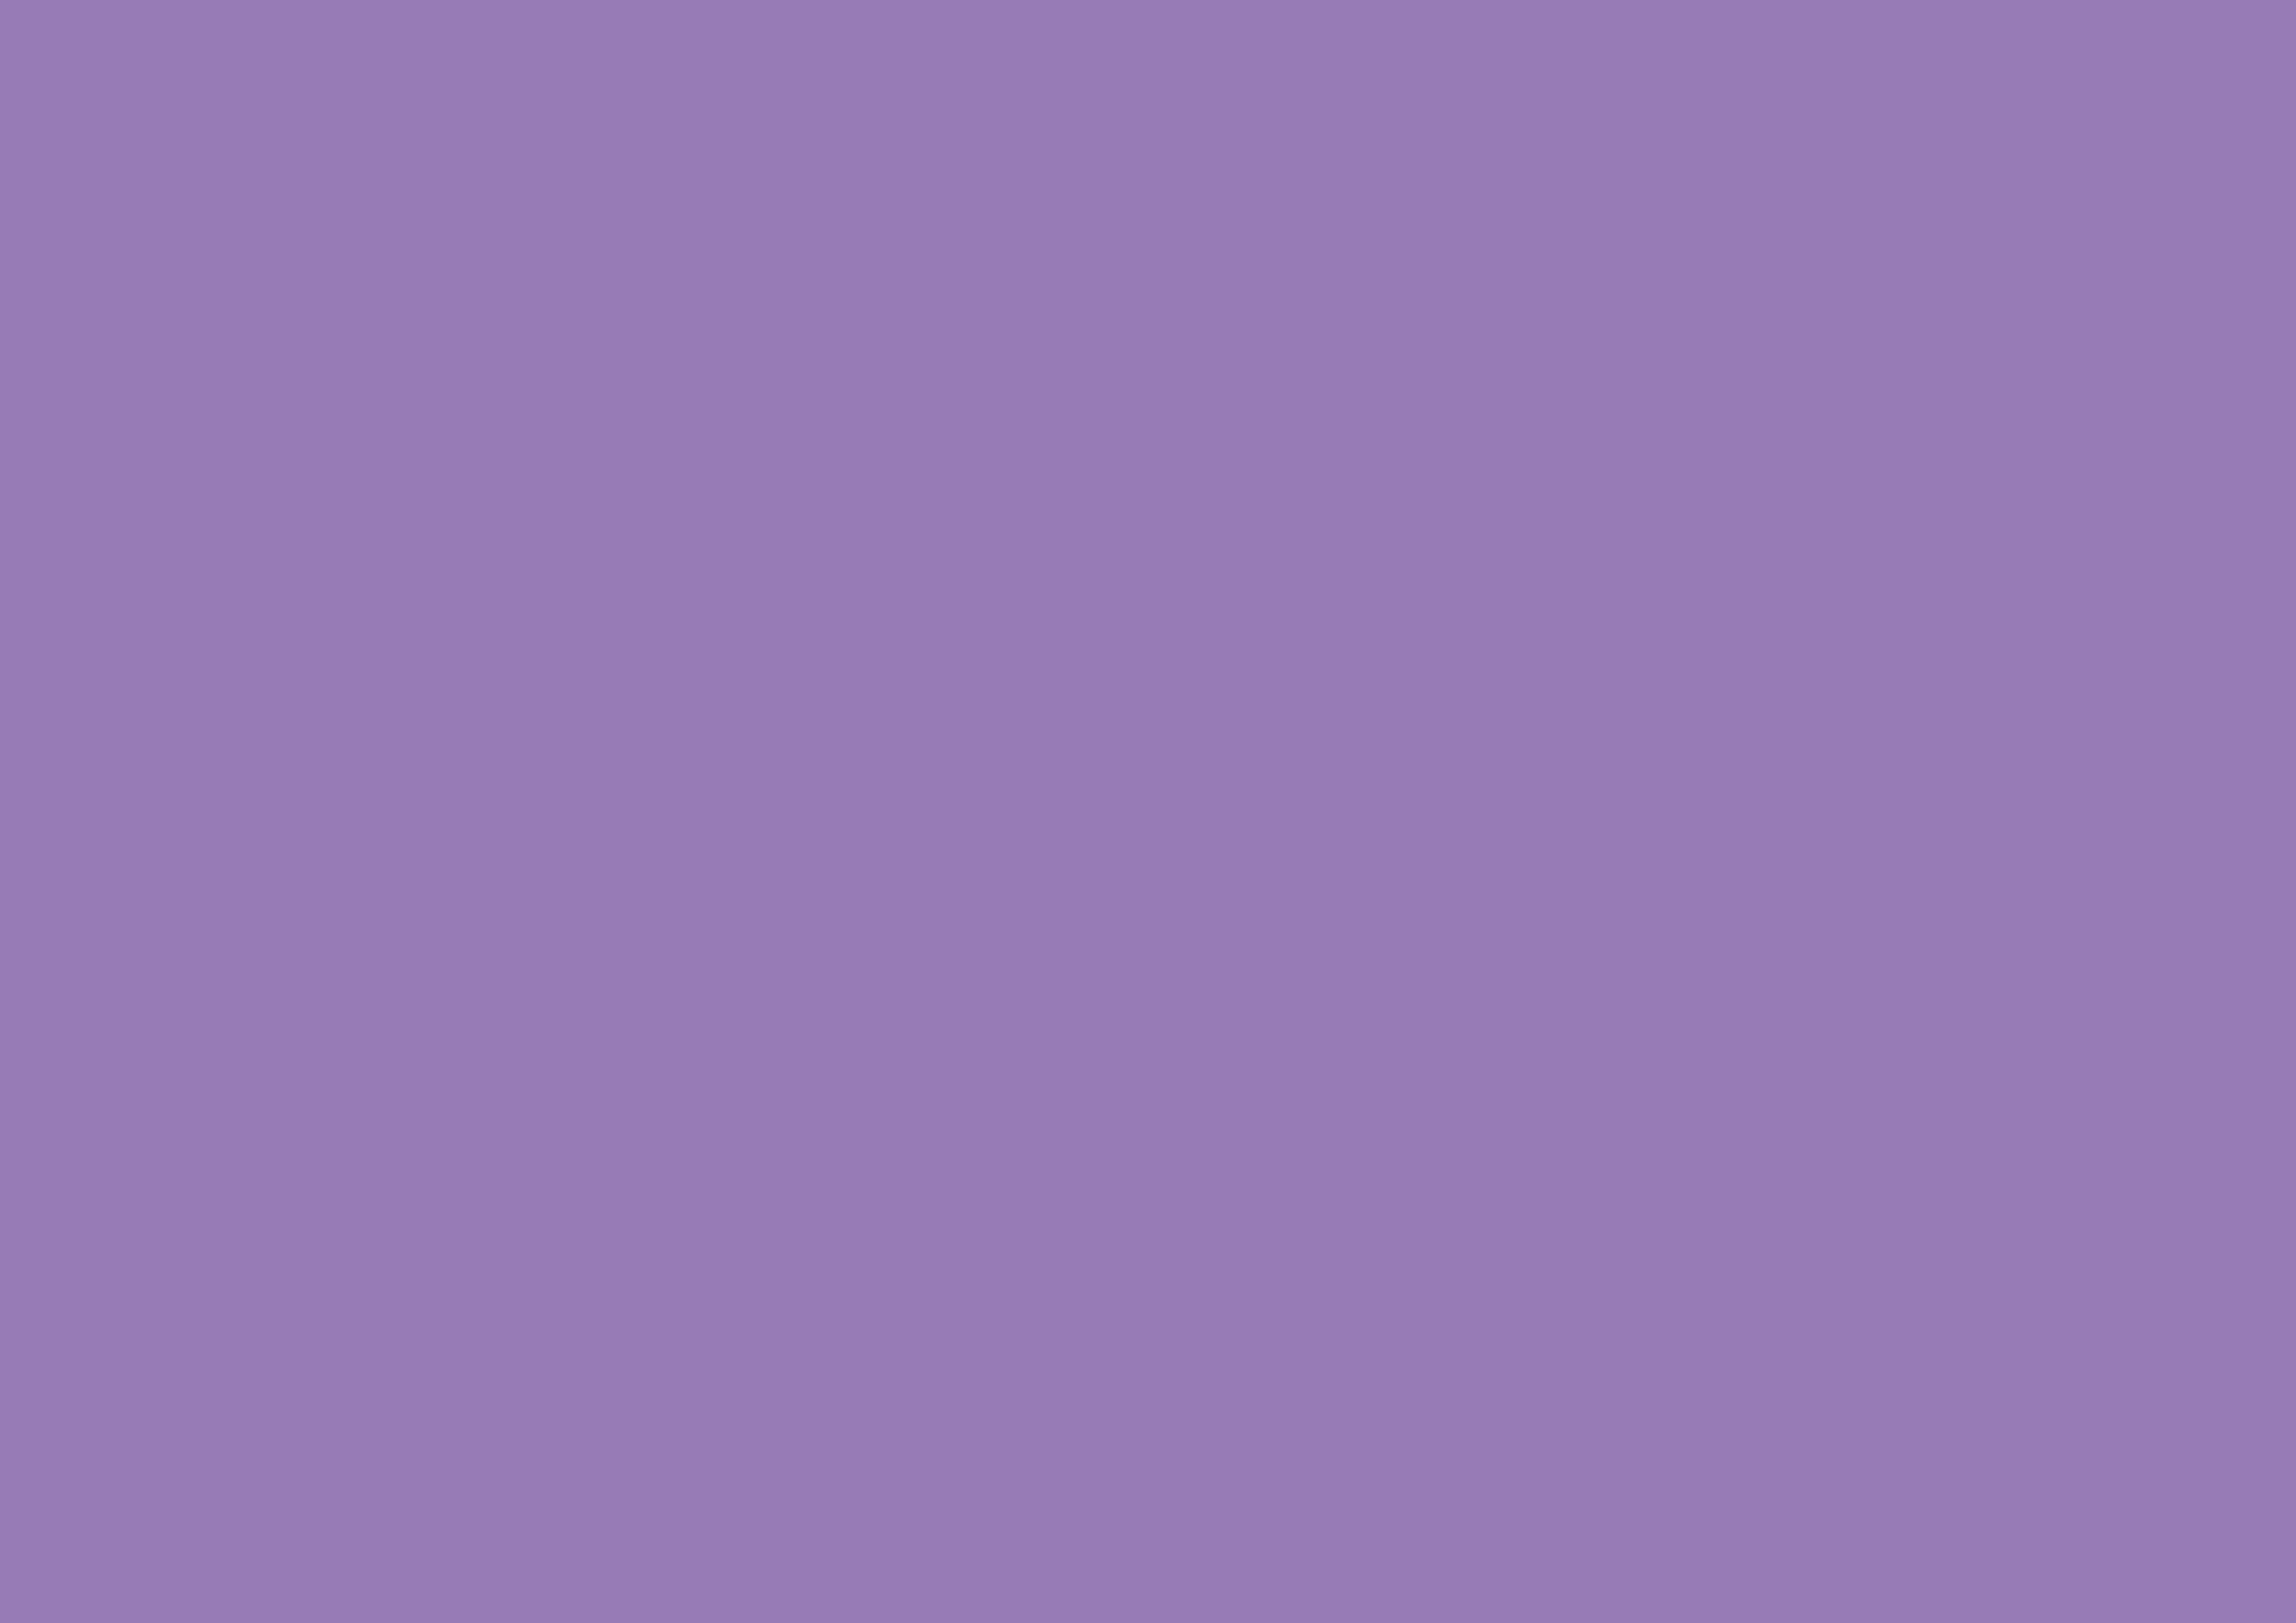 3508x2480 Lavender Purple Solid Color Background